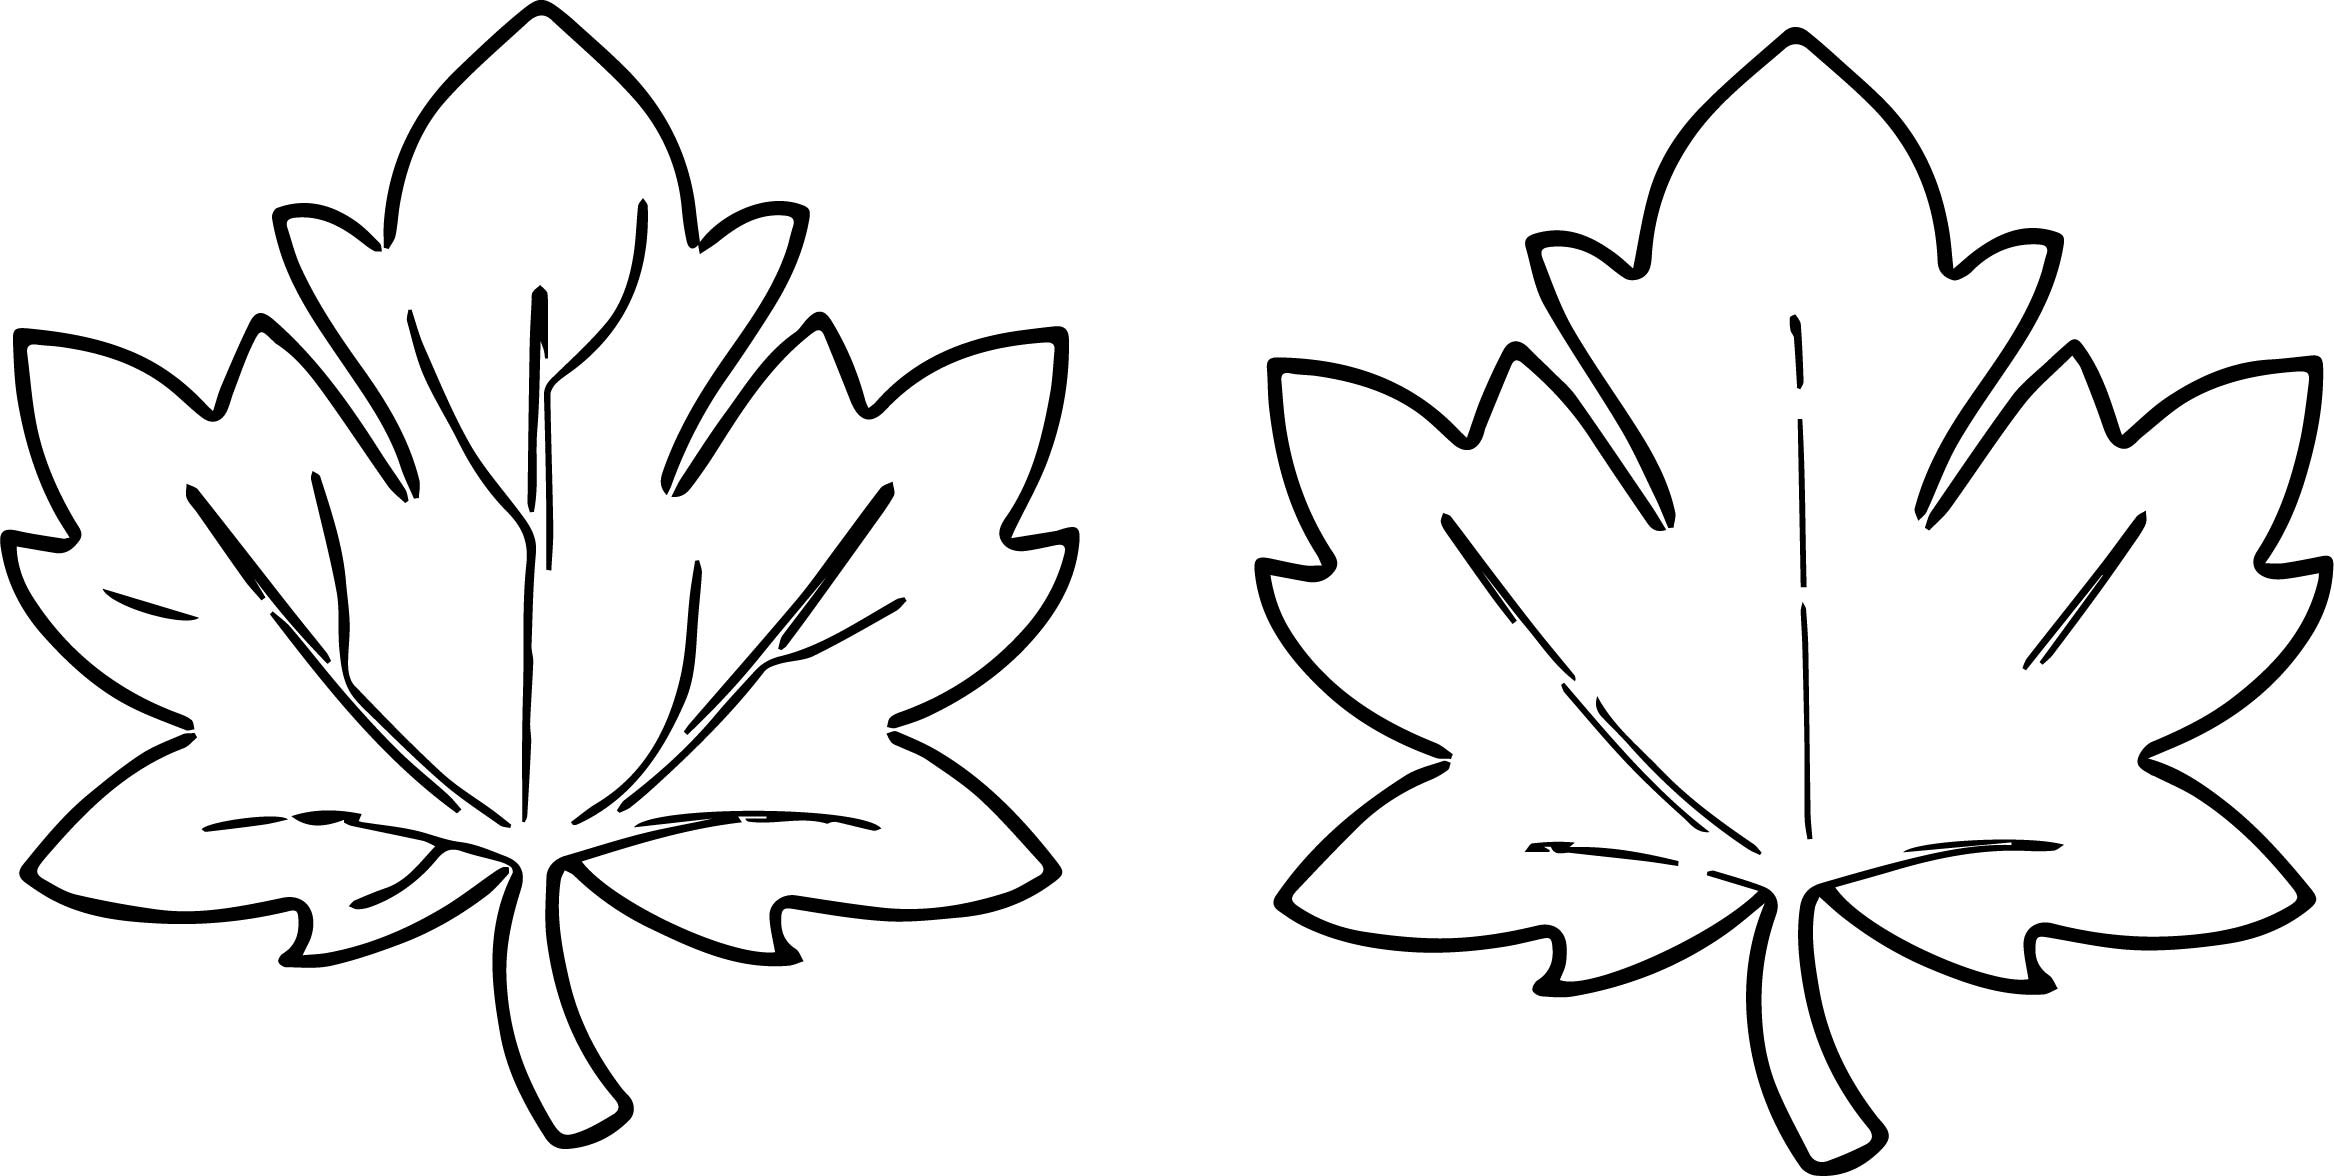 Fall Leaves Coloring Sheet  Fall Leaves For Fall Leaf Coloring Page